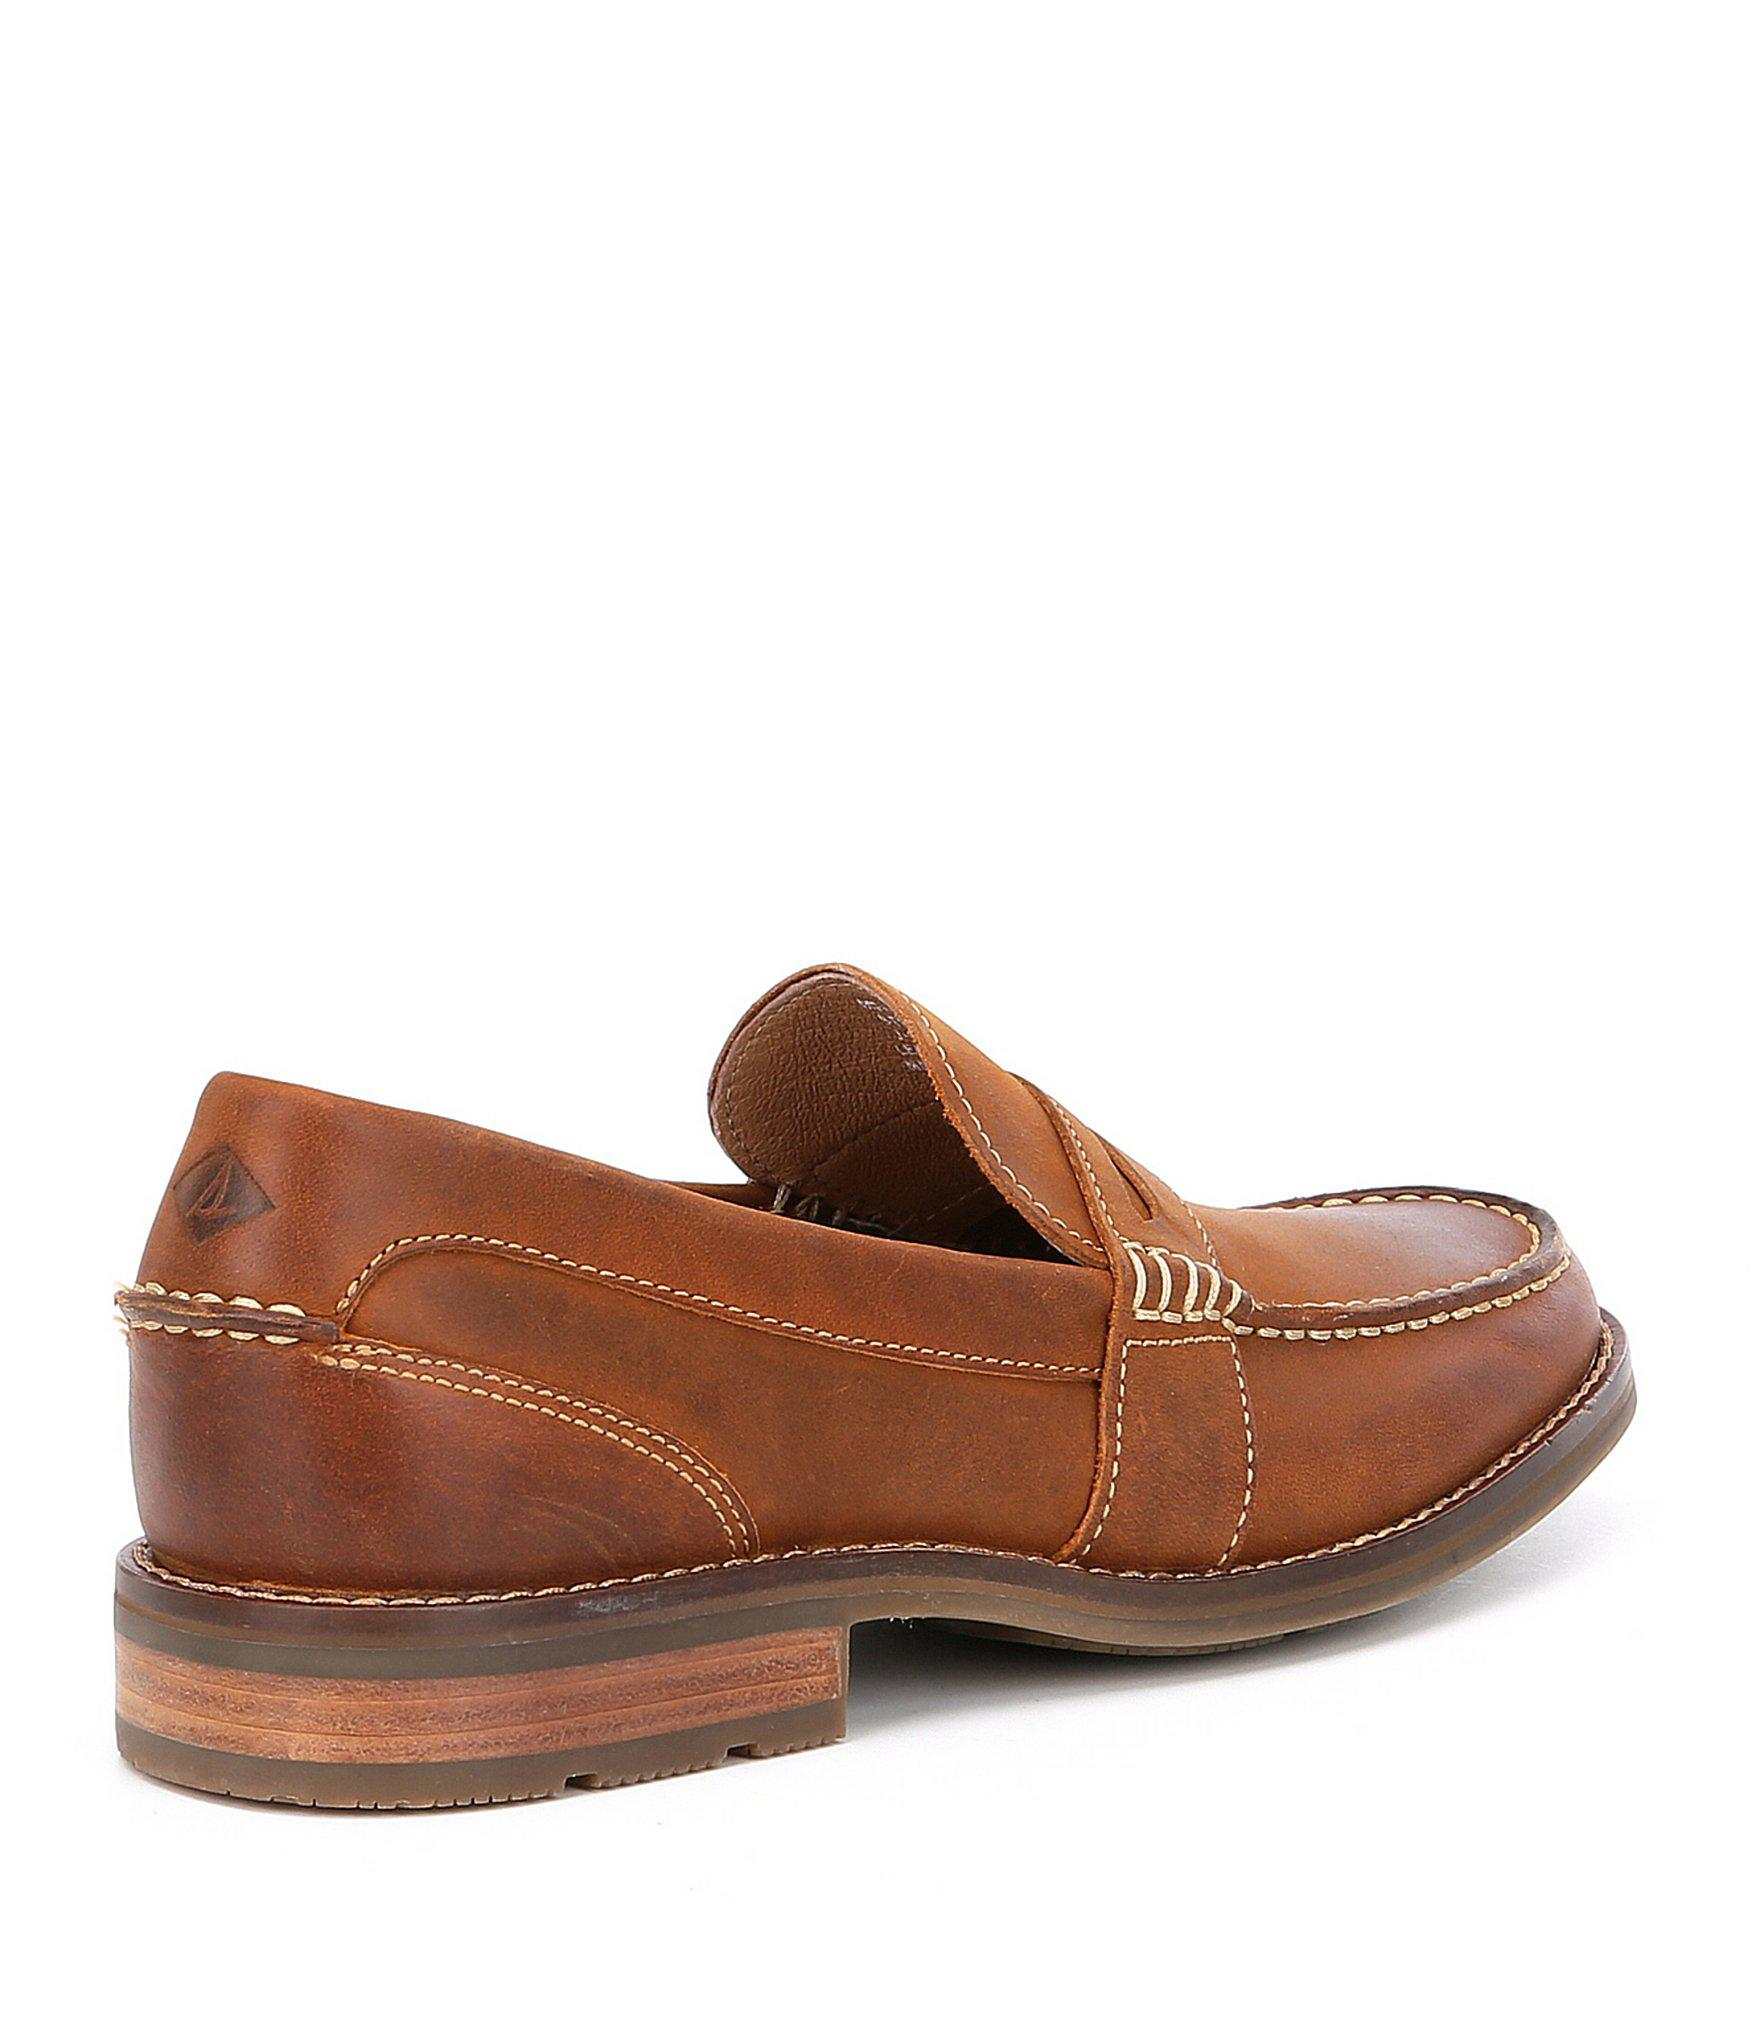 f8204087a4e7 Sperry Top-Sider - Brown Men s Essex Penny Loafers for Men - Lyst. View  fullscreen